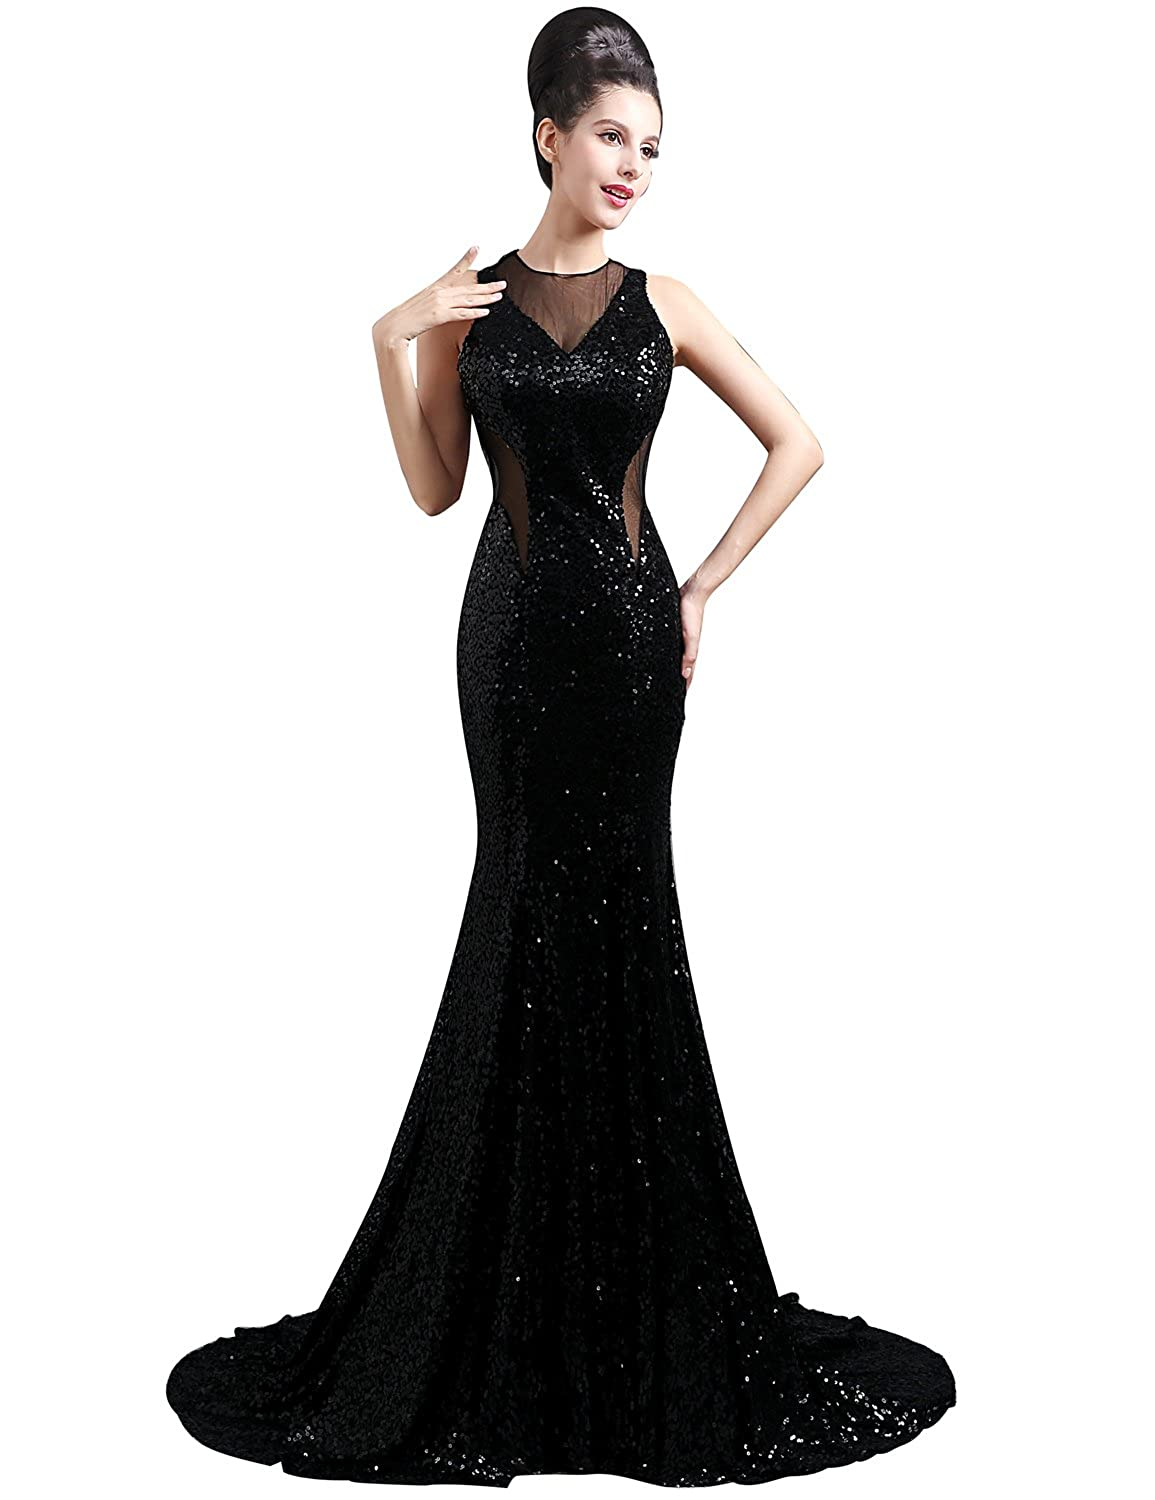 Clearbridal Women's Sequines Mermaid Prom Dress Formal Long Sheer Neck Prom Gown with Sweep Train SD300